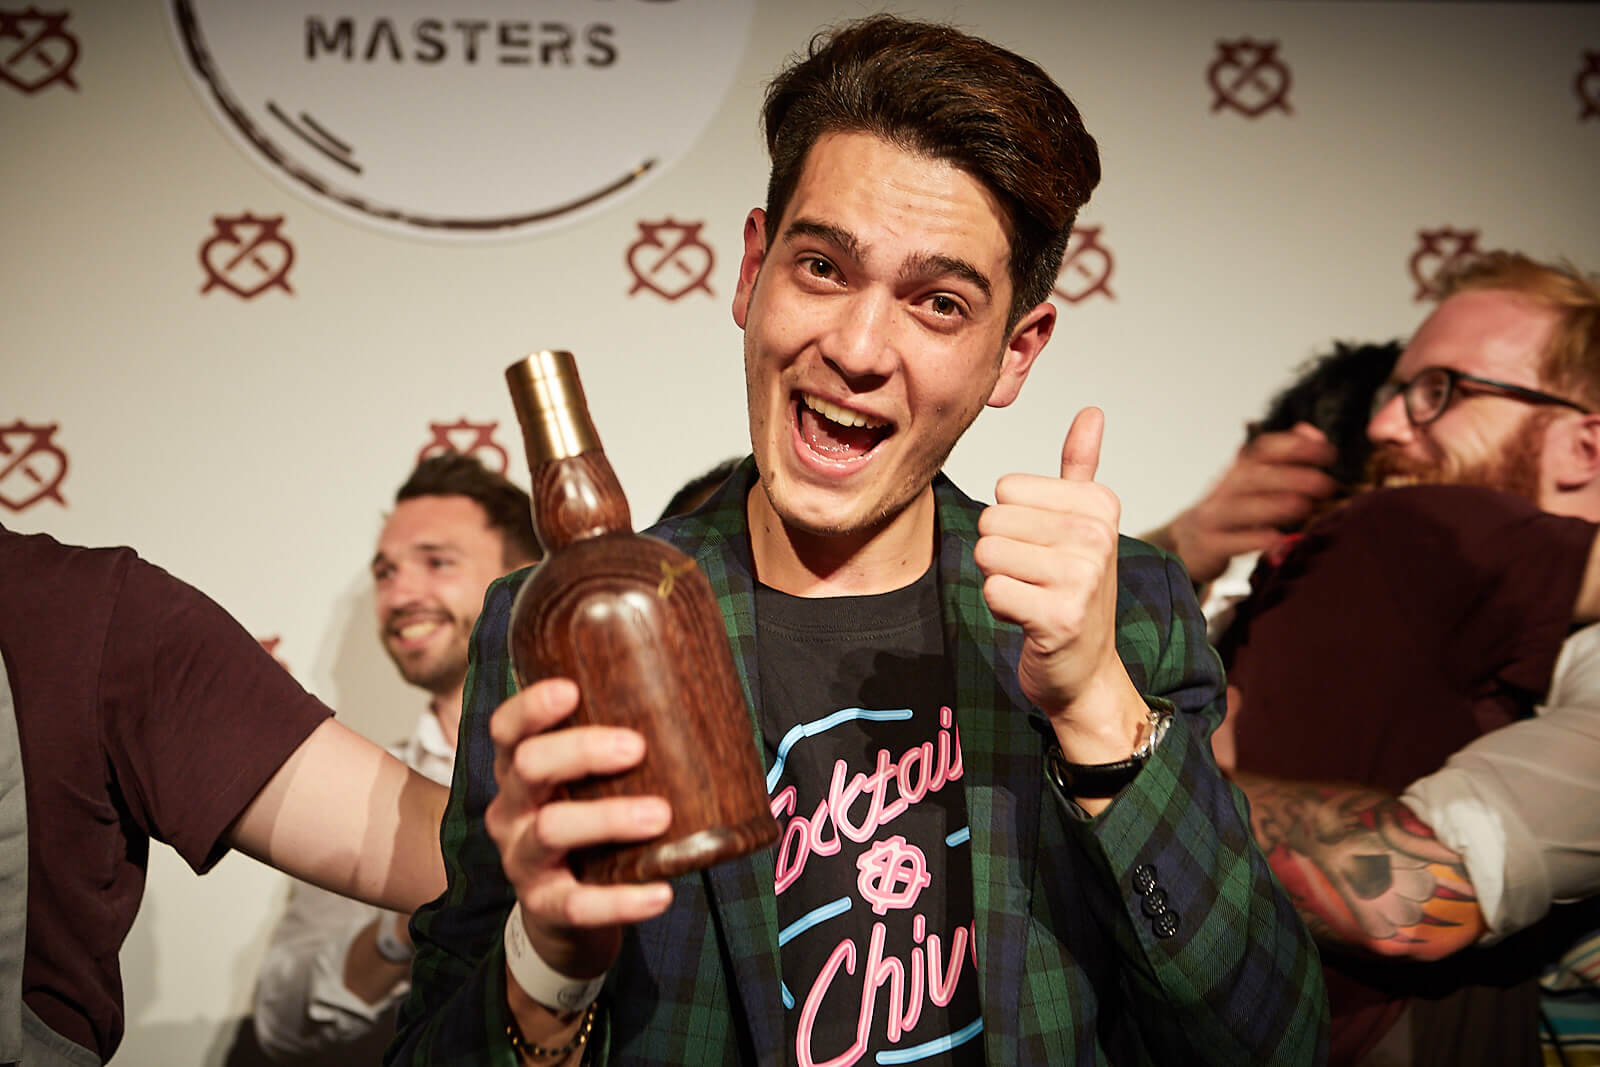 ARRON GRENDON PROVIDES A MASTERCLASS IN TEAM SPIRIT TO RECEIVE THE 2018 CHIVAS MASTERS CROWN